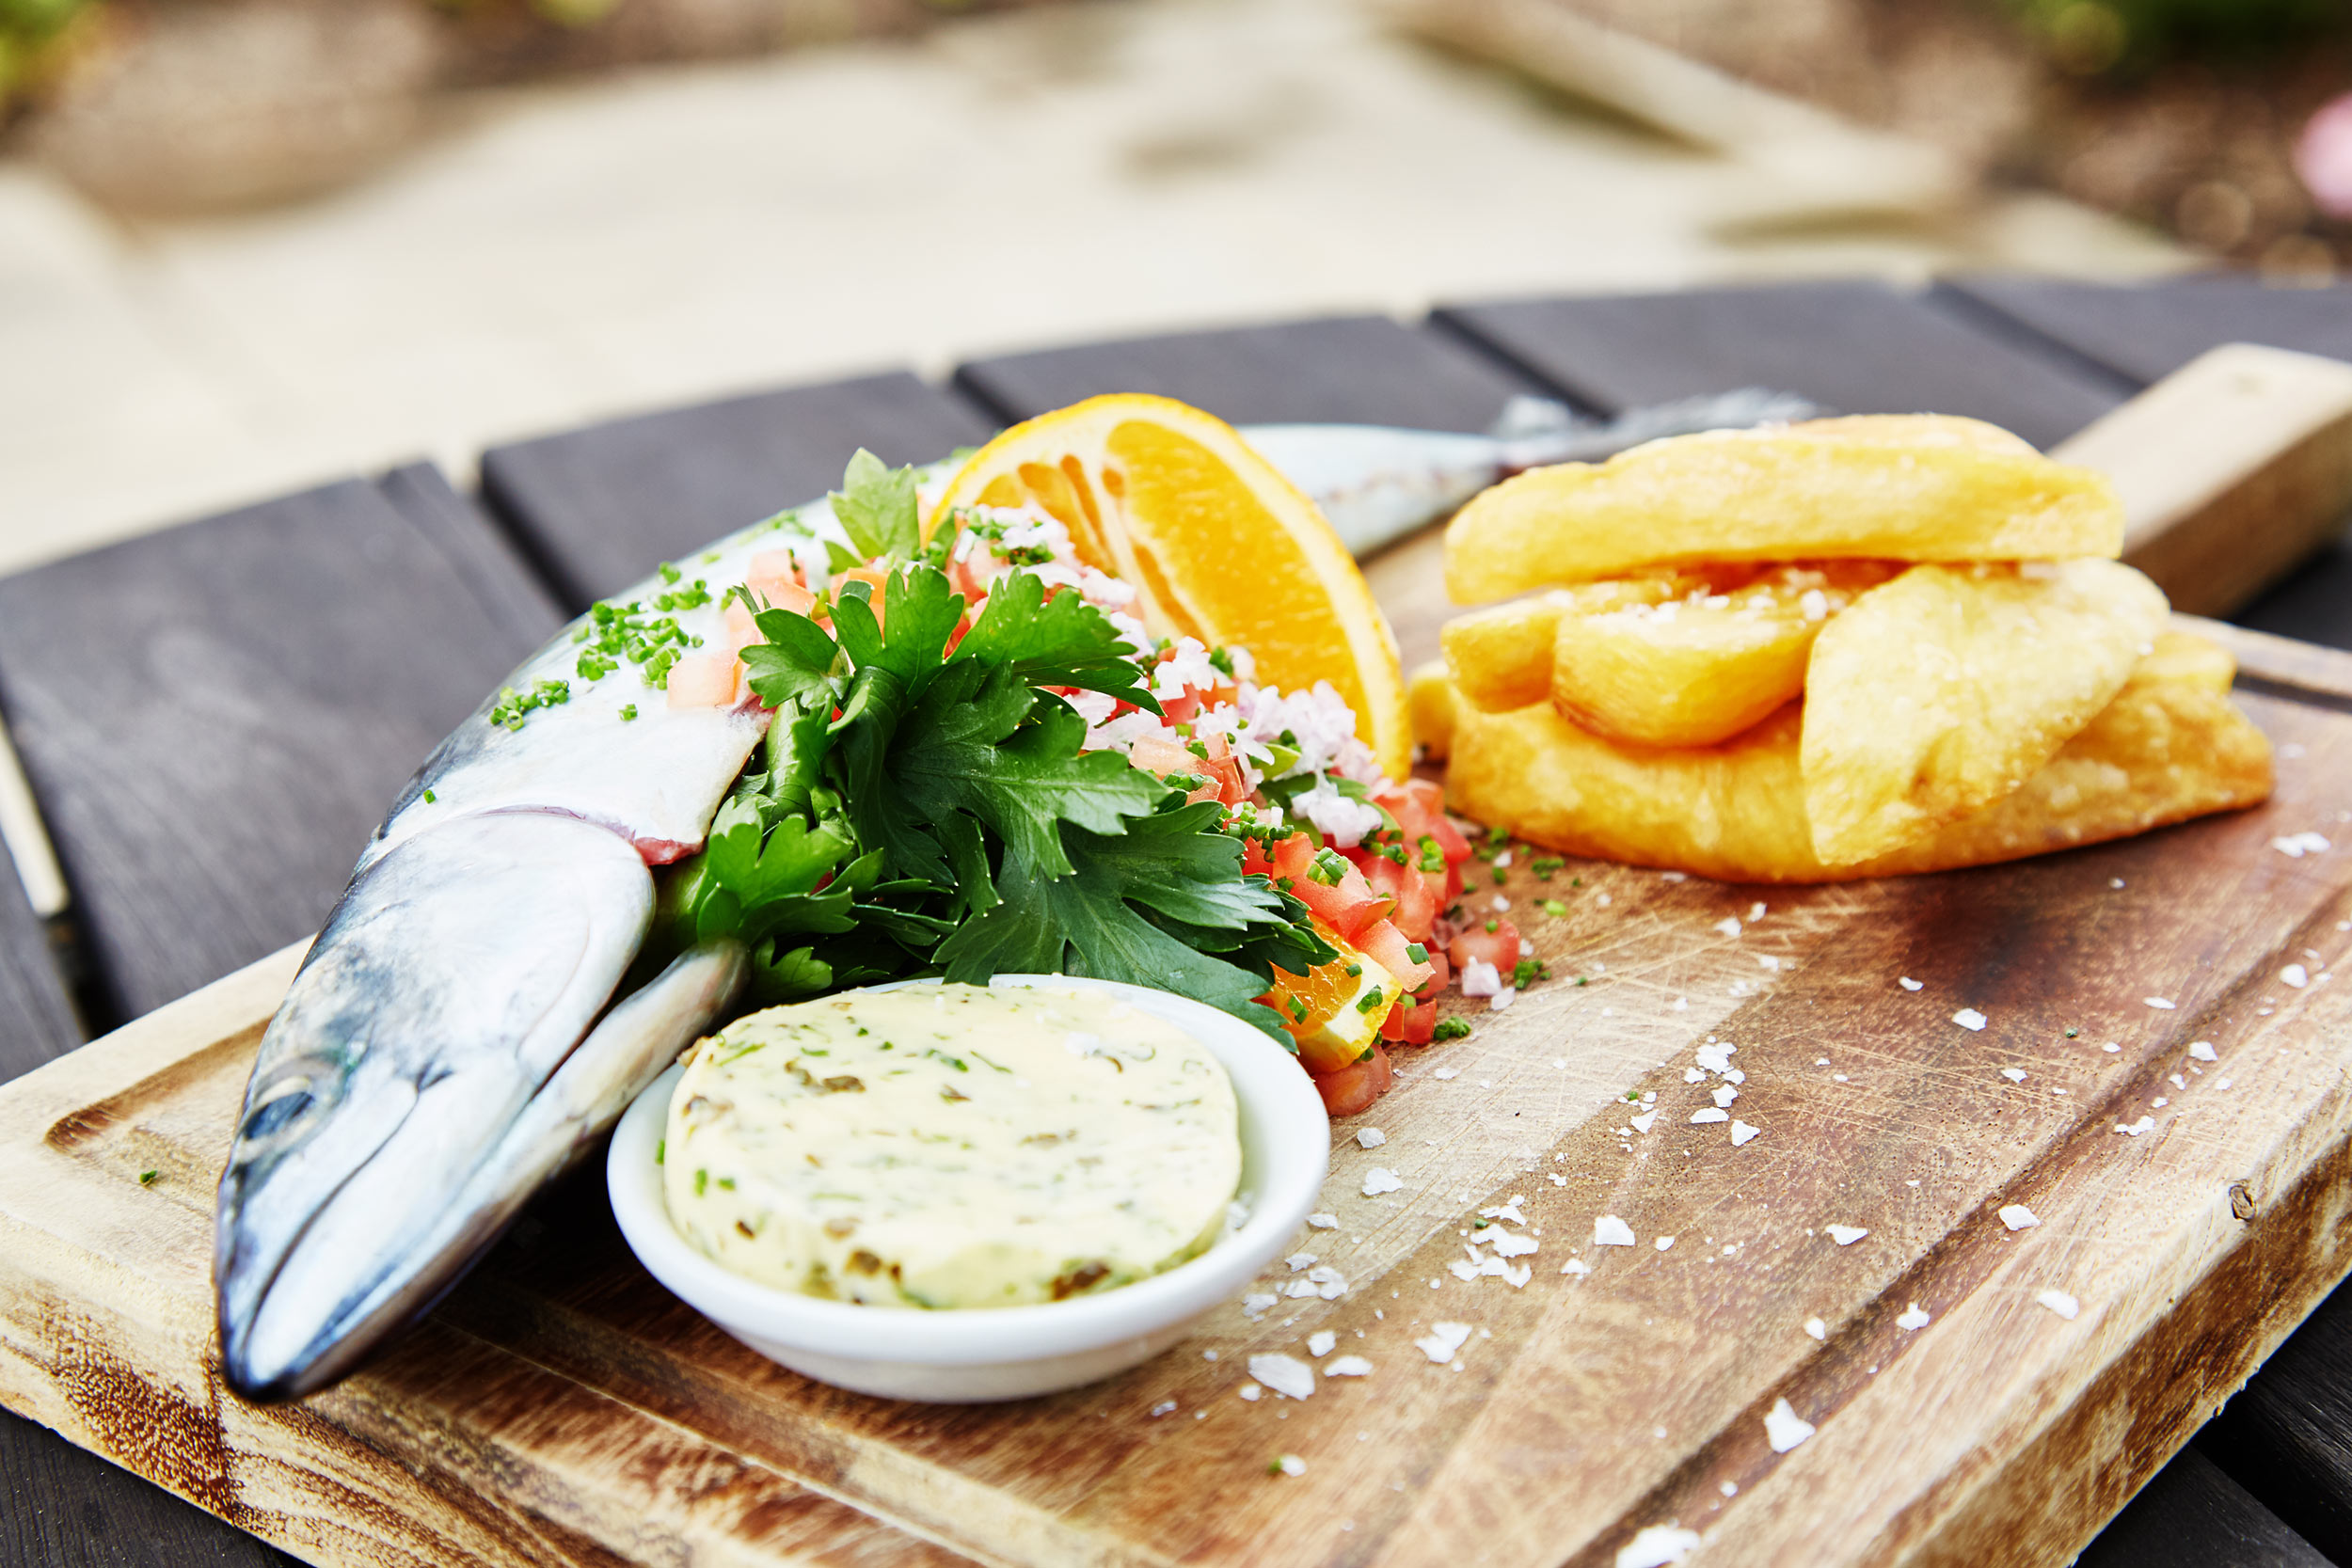 Location photographer - london - fish and chips on wooden board in pub garden.  Graphic design images.  Cape Town, South Africa.